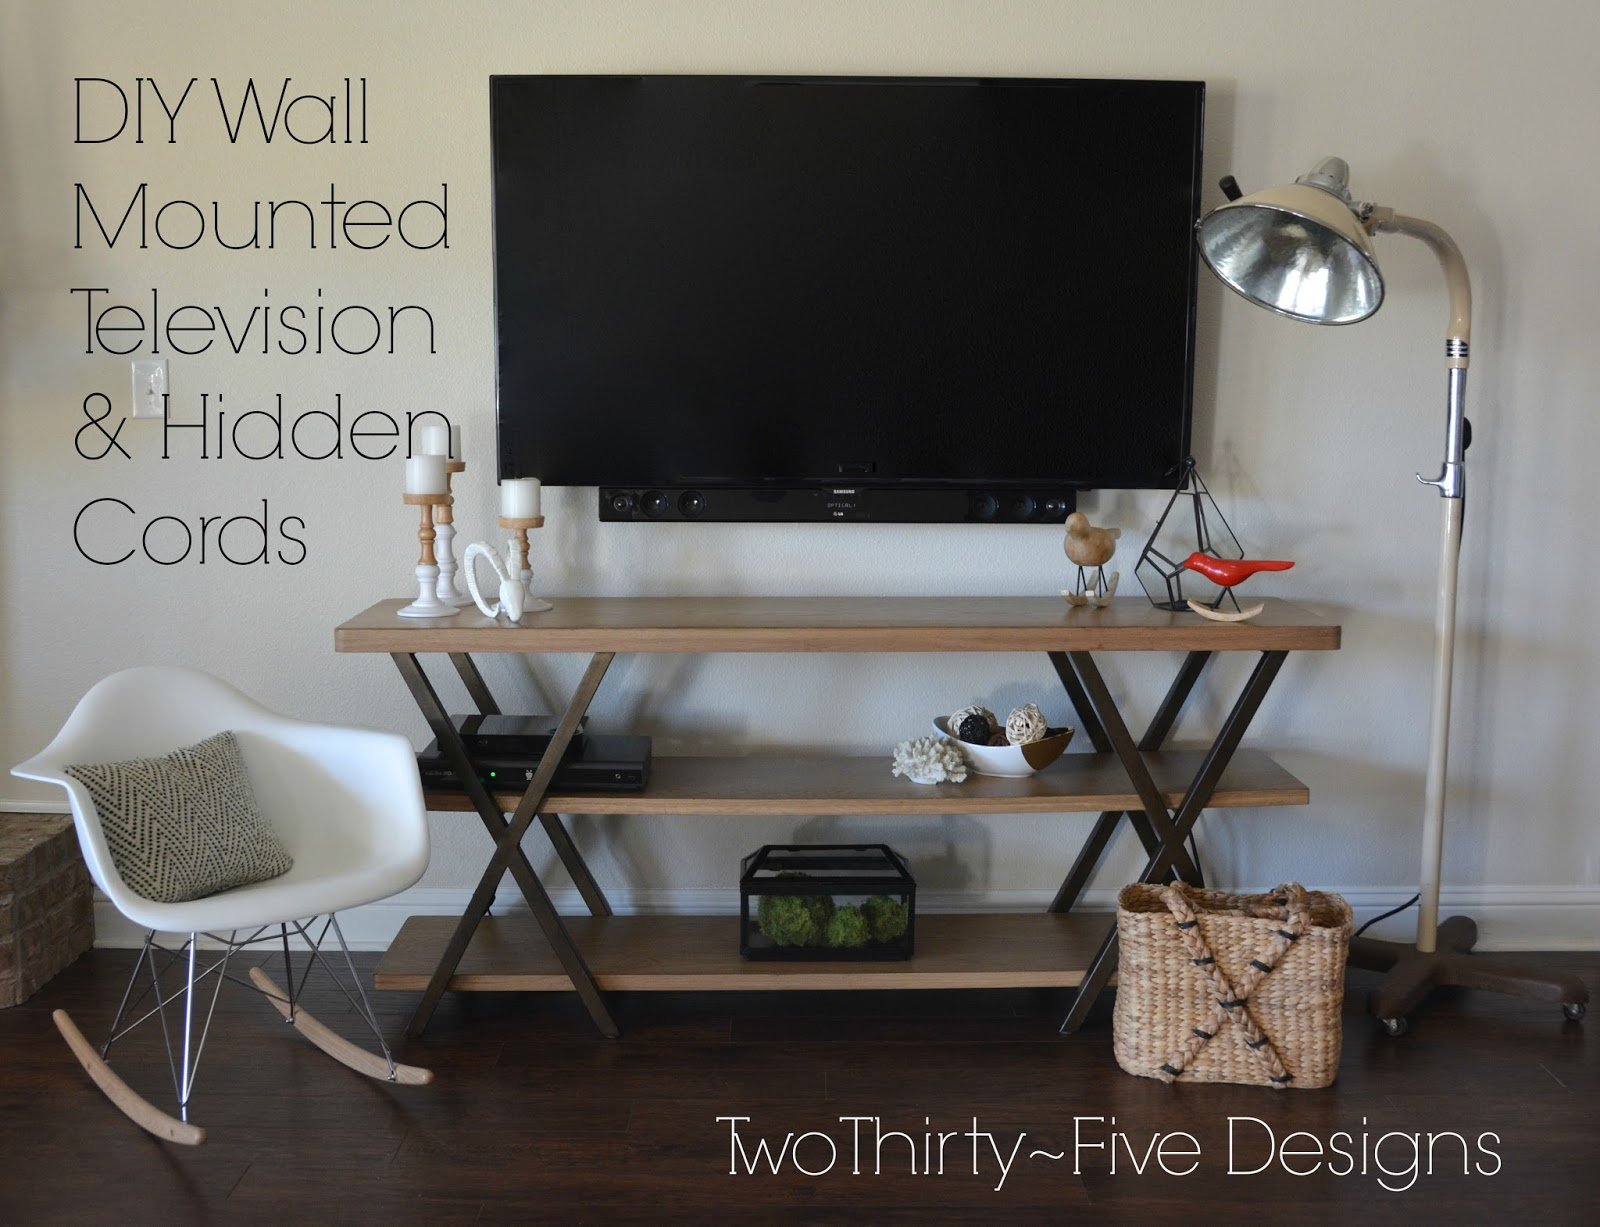 How To Hide Wires For Wall Mounted Tv Newhairstylesformen2014com